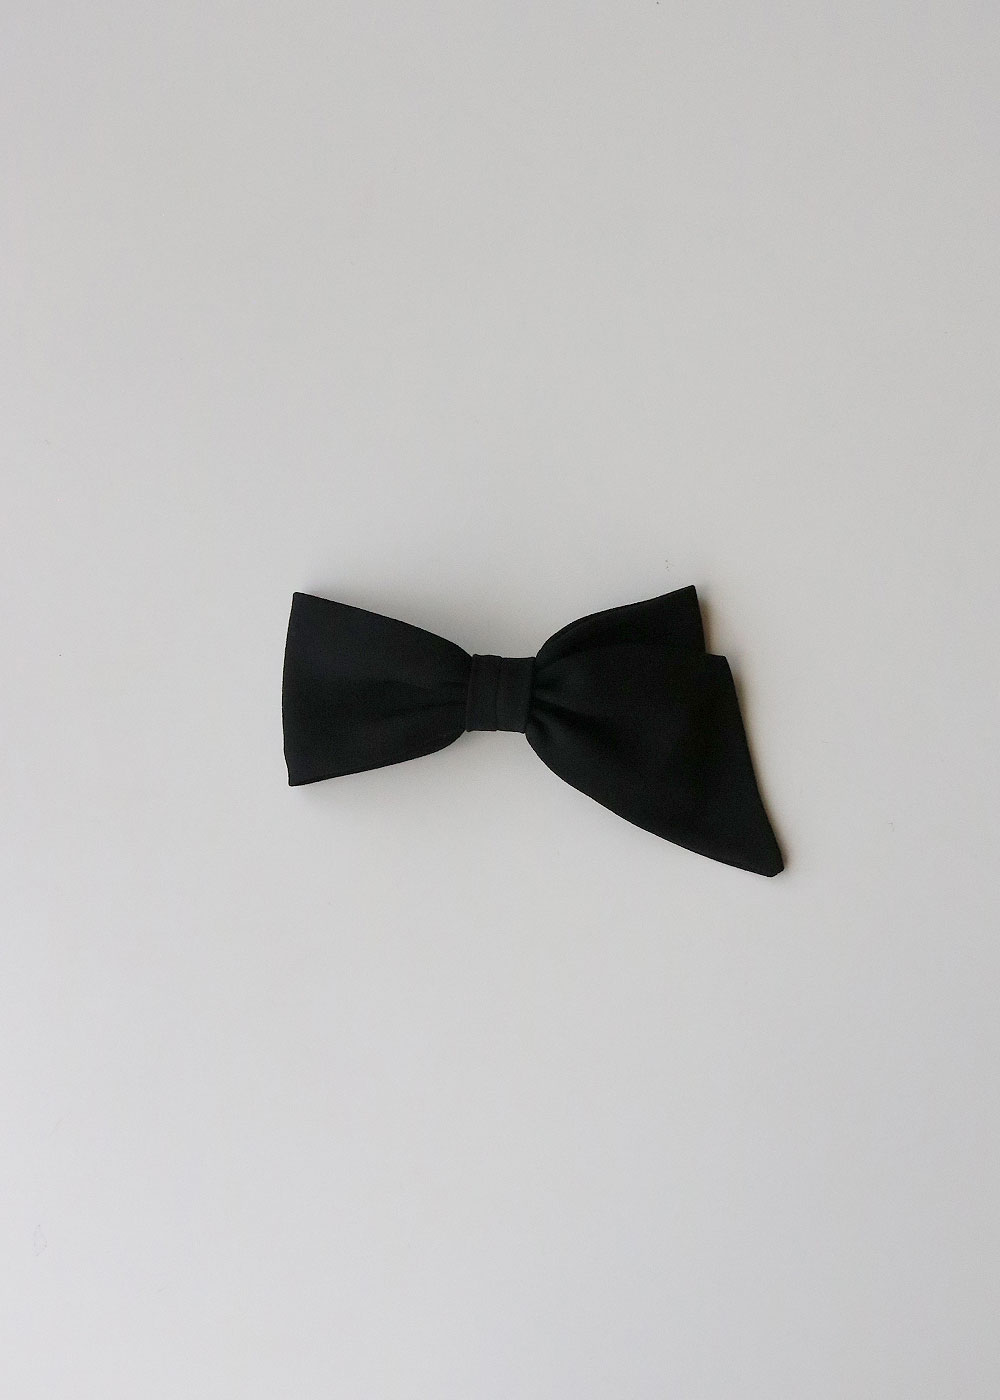 ASYMMETRICAL BOW